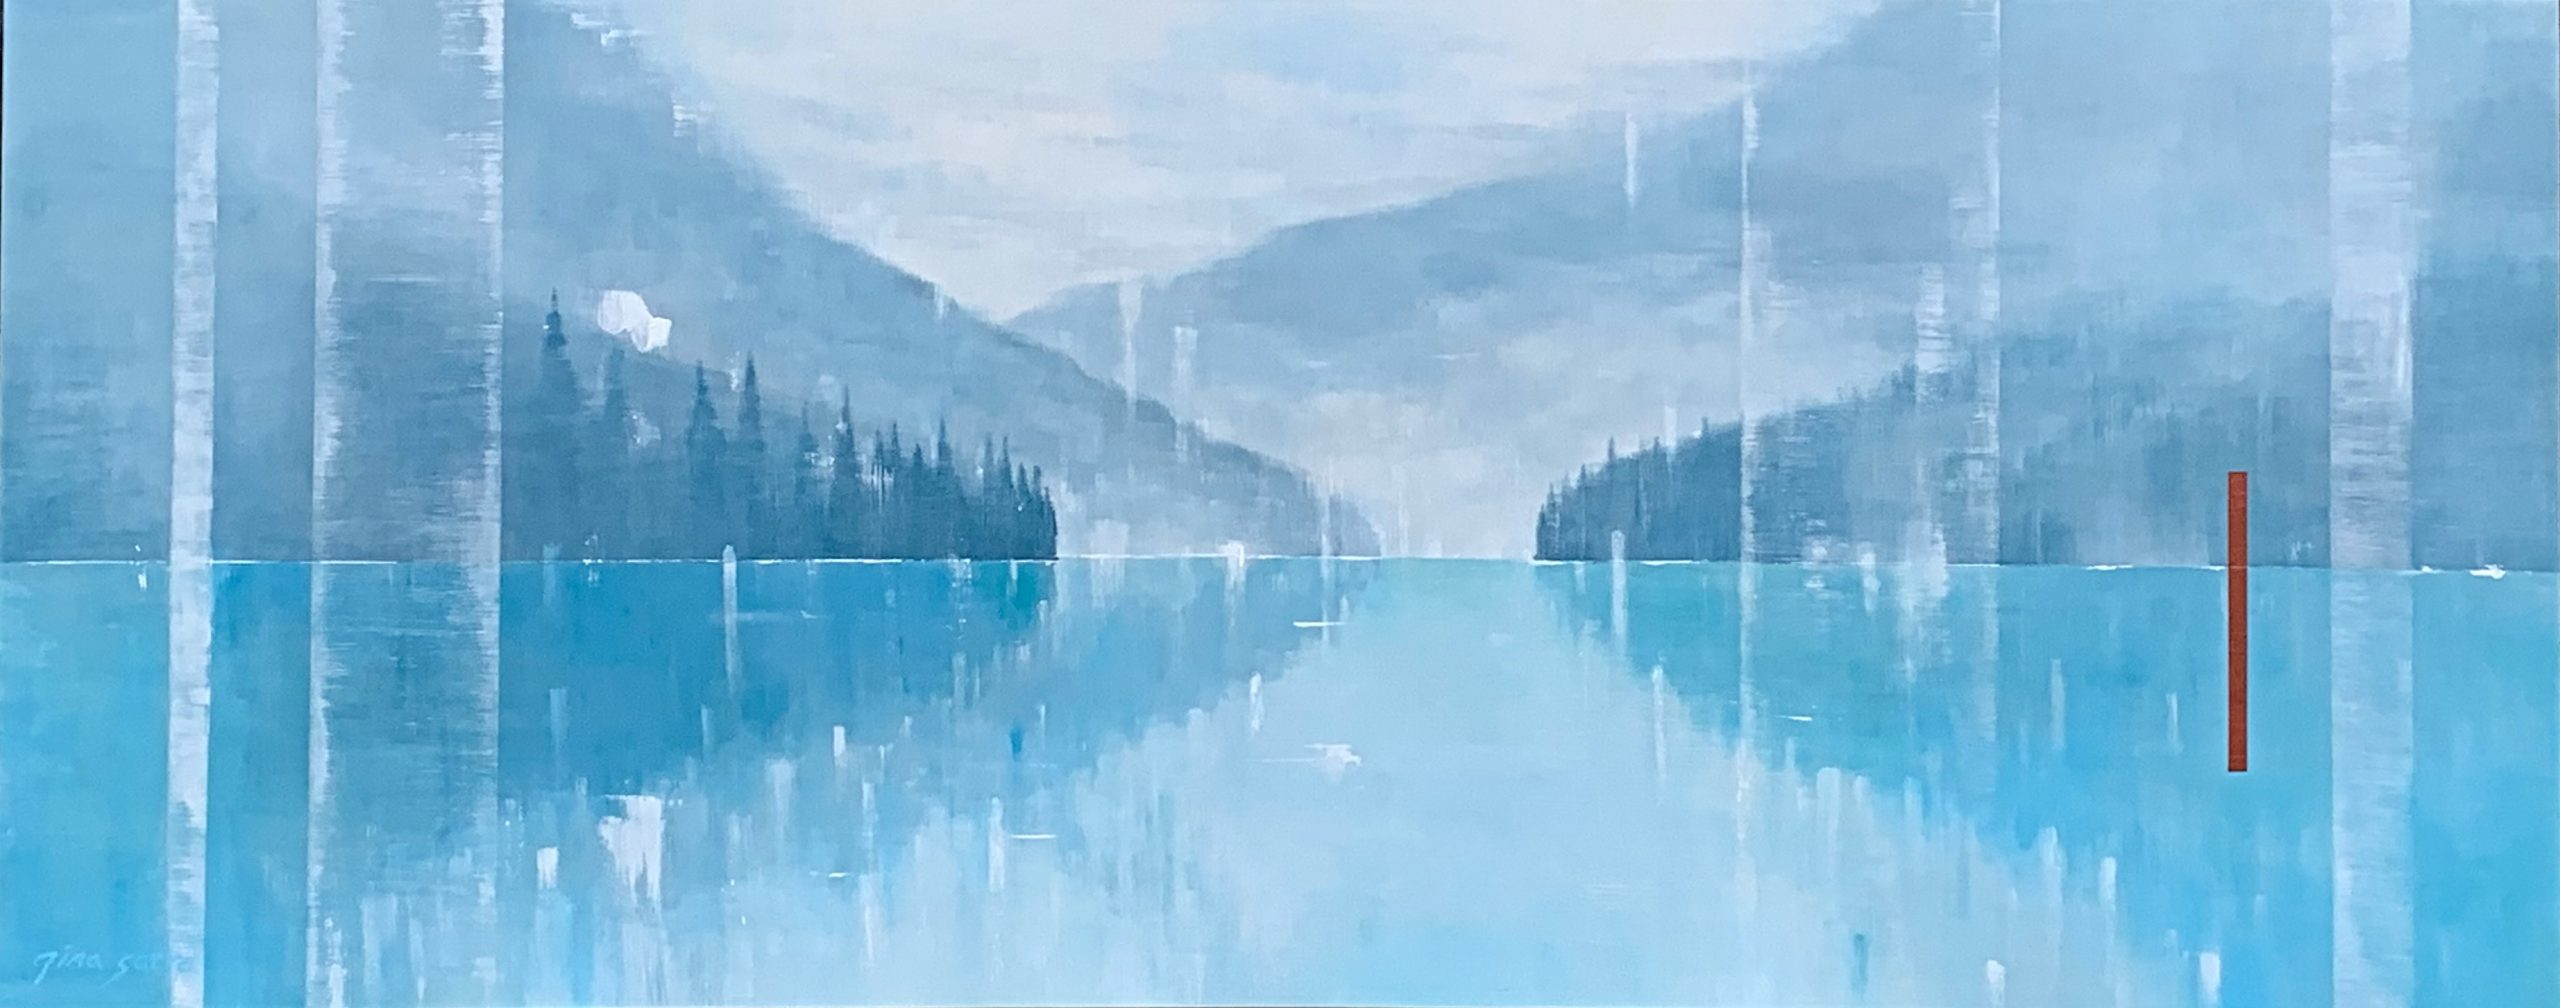 Time of Silence, landscape painting by Gina Sarro | Effusion Art Gallery + Cast Glass Studio, Invermere BC